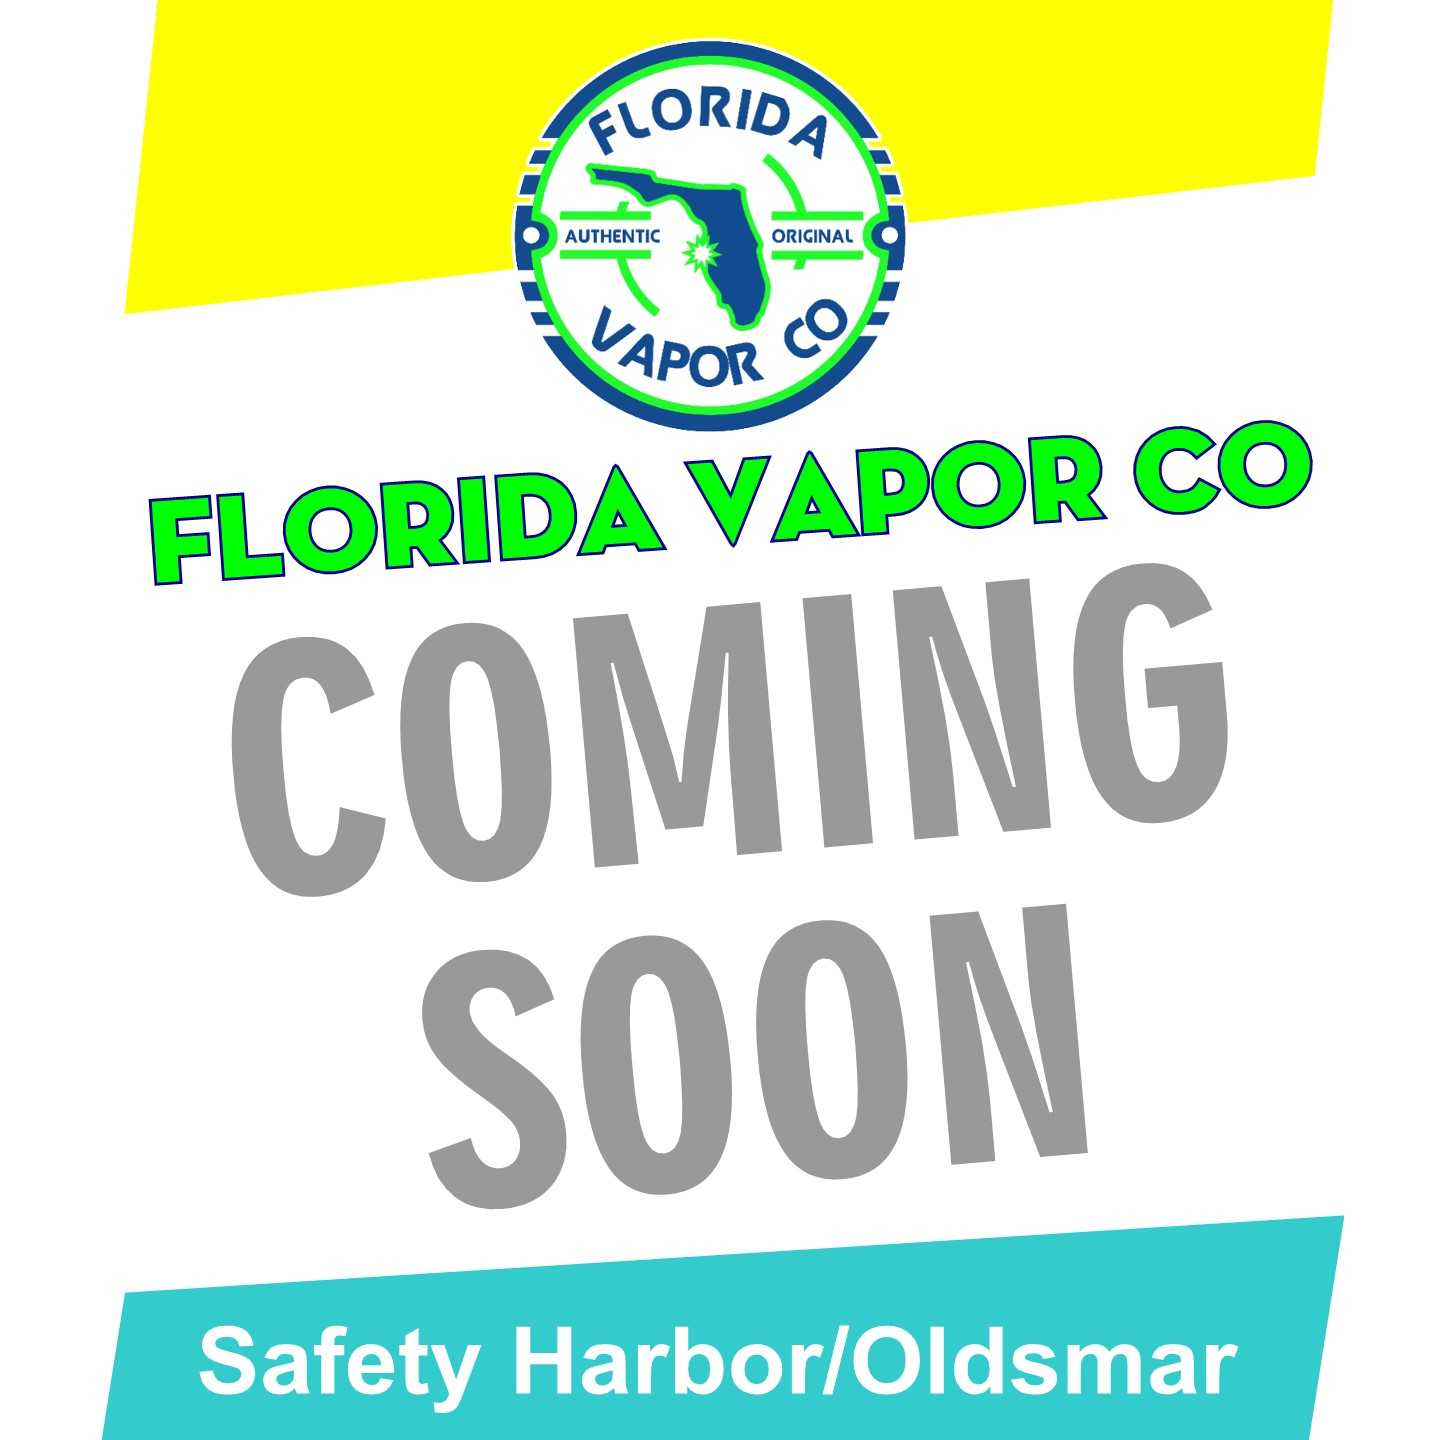 fla_vapor_co_safety_harbor_oldsmar.jpg